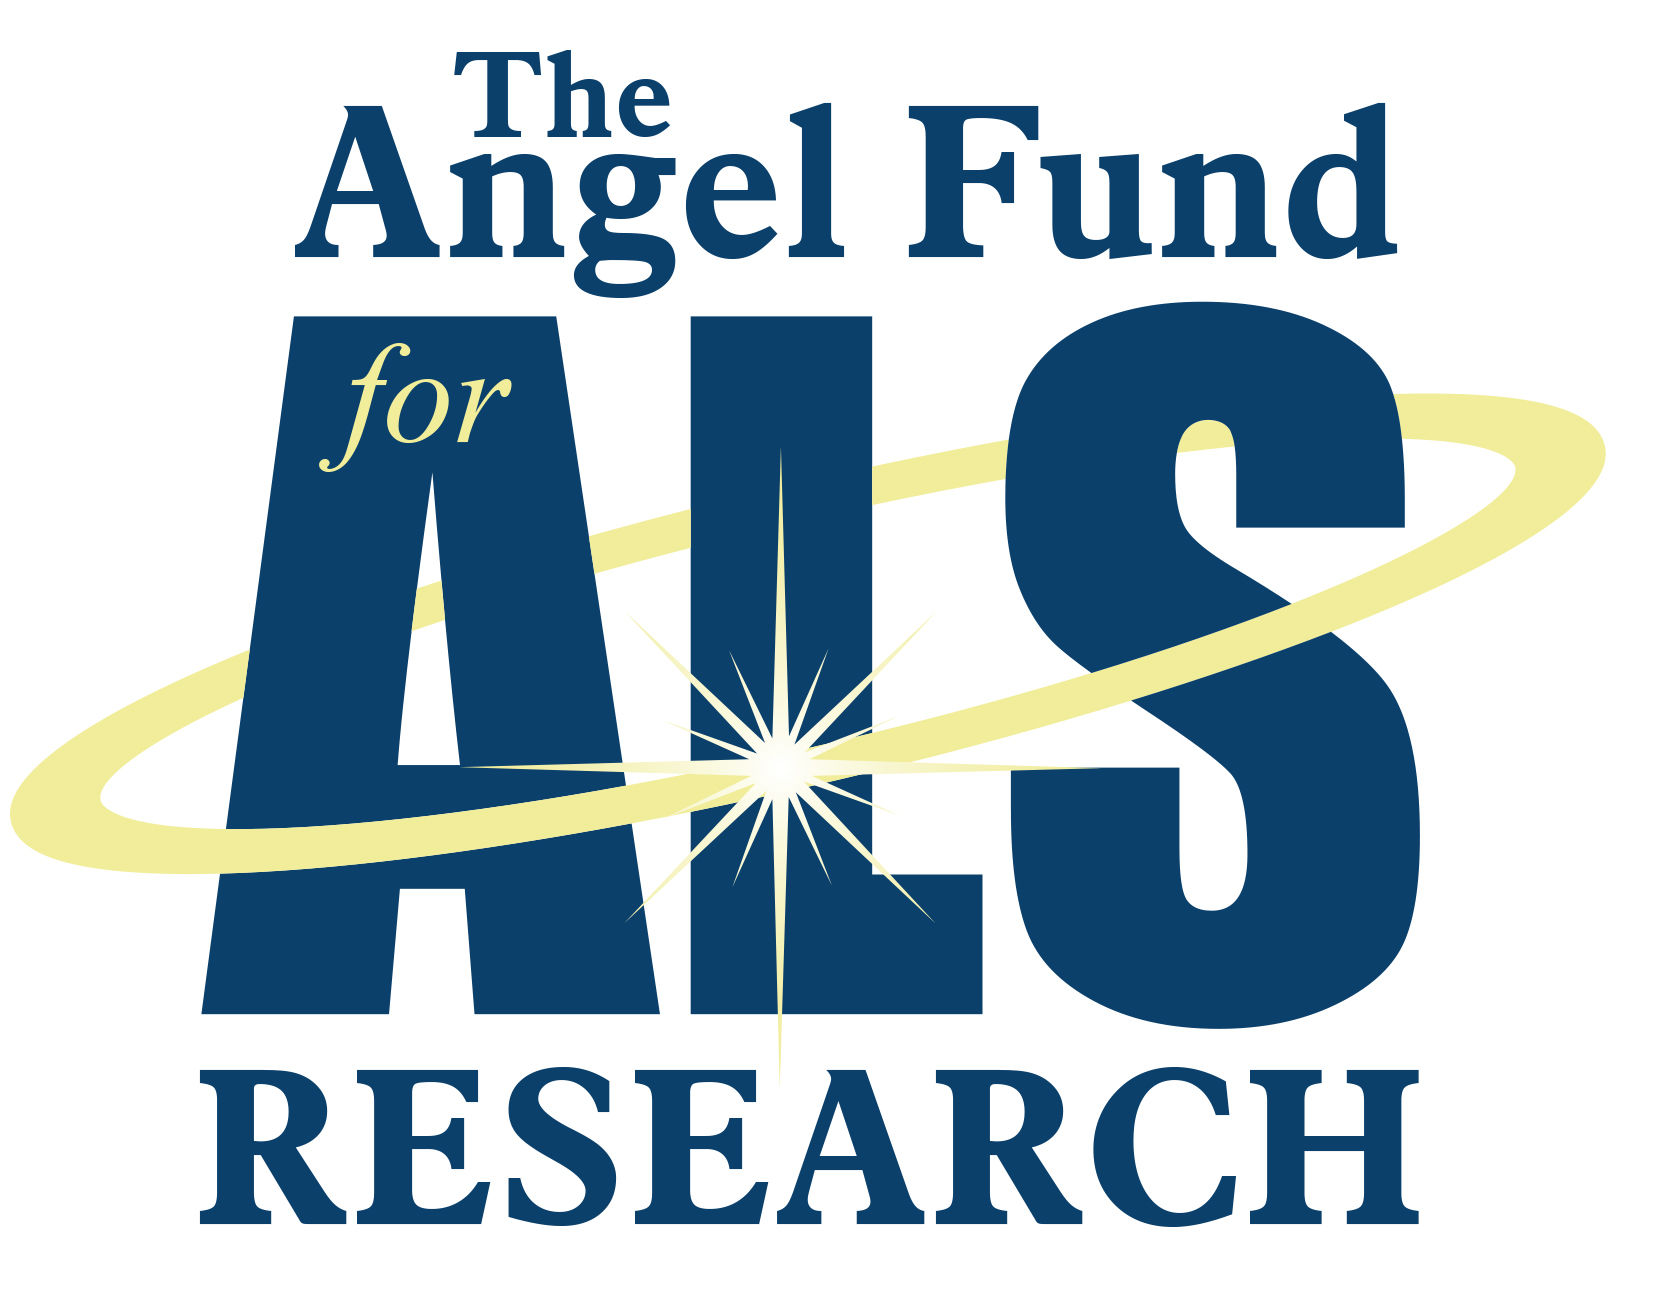 angel-fund-inc_processed_e286b129f5313ad7bd2770ada6e980de6bb25e7579c17d8322be8ce7b7b9daf7_logo.jpg